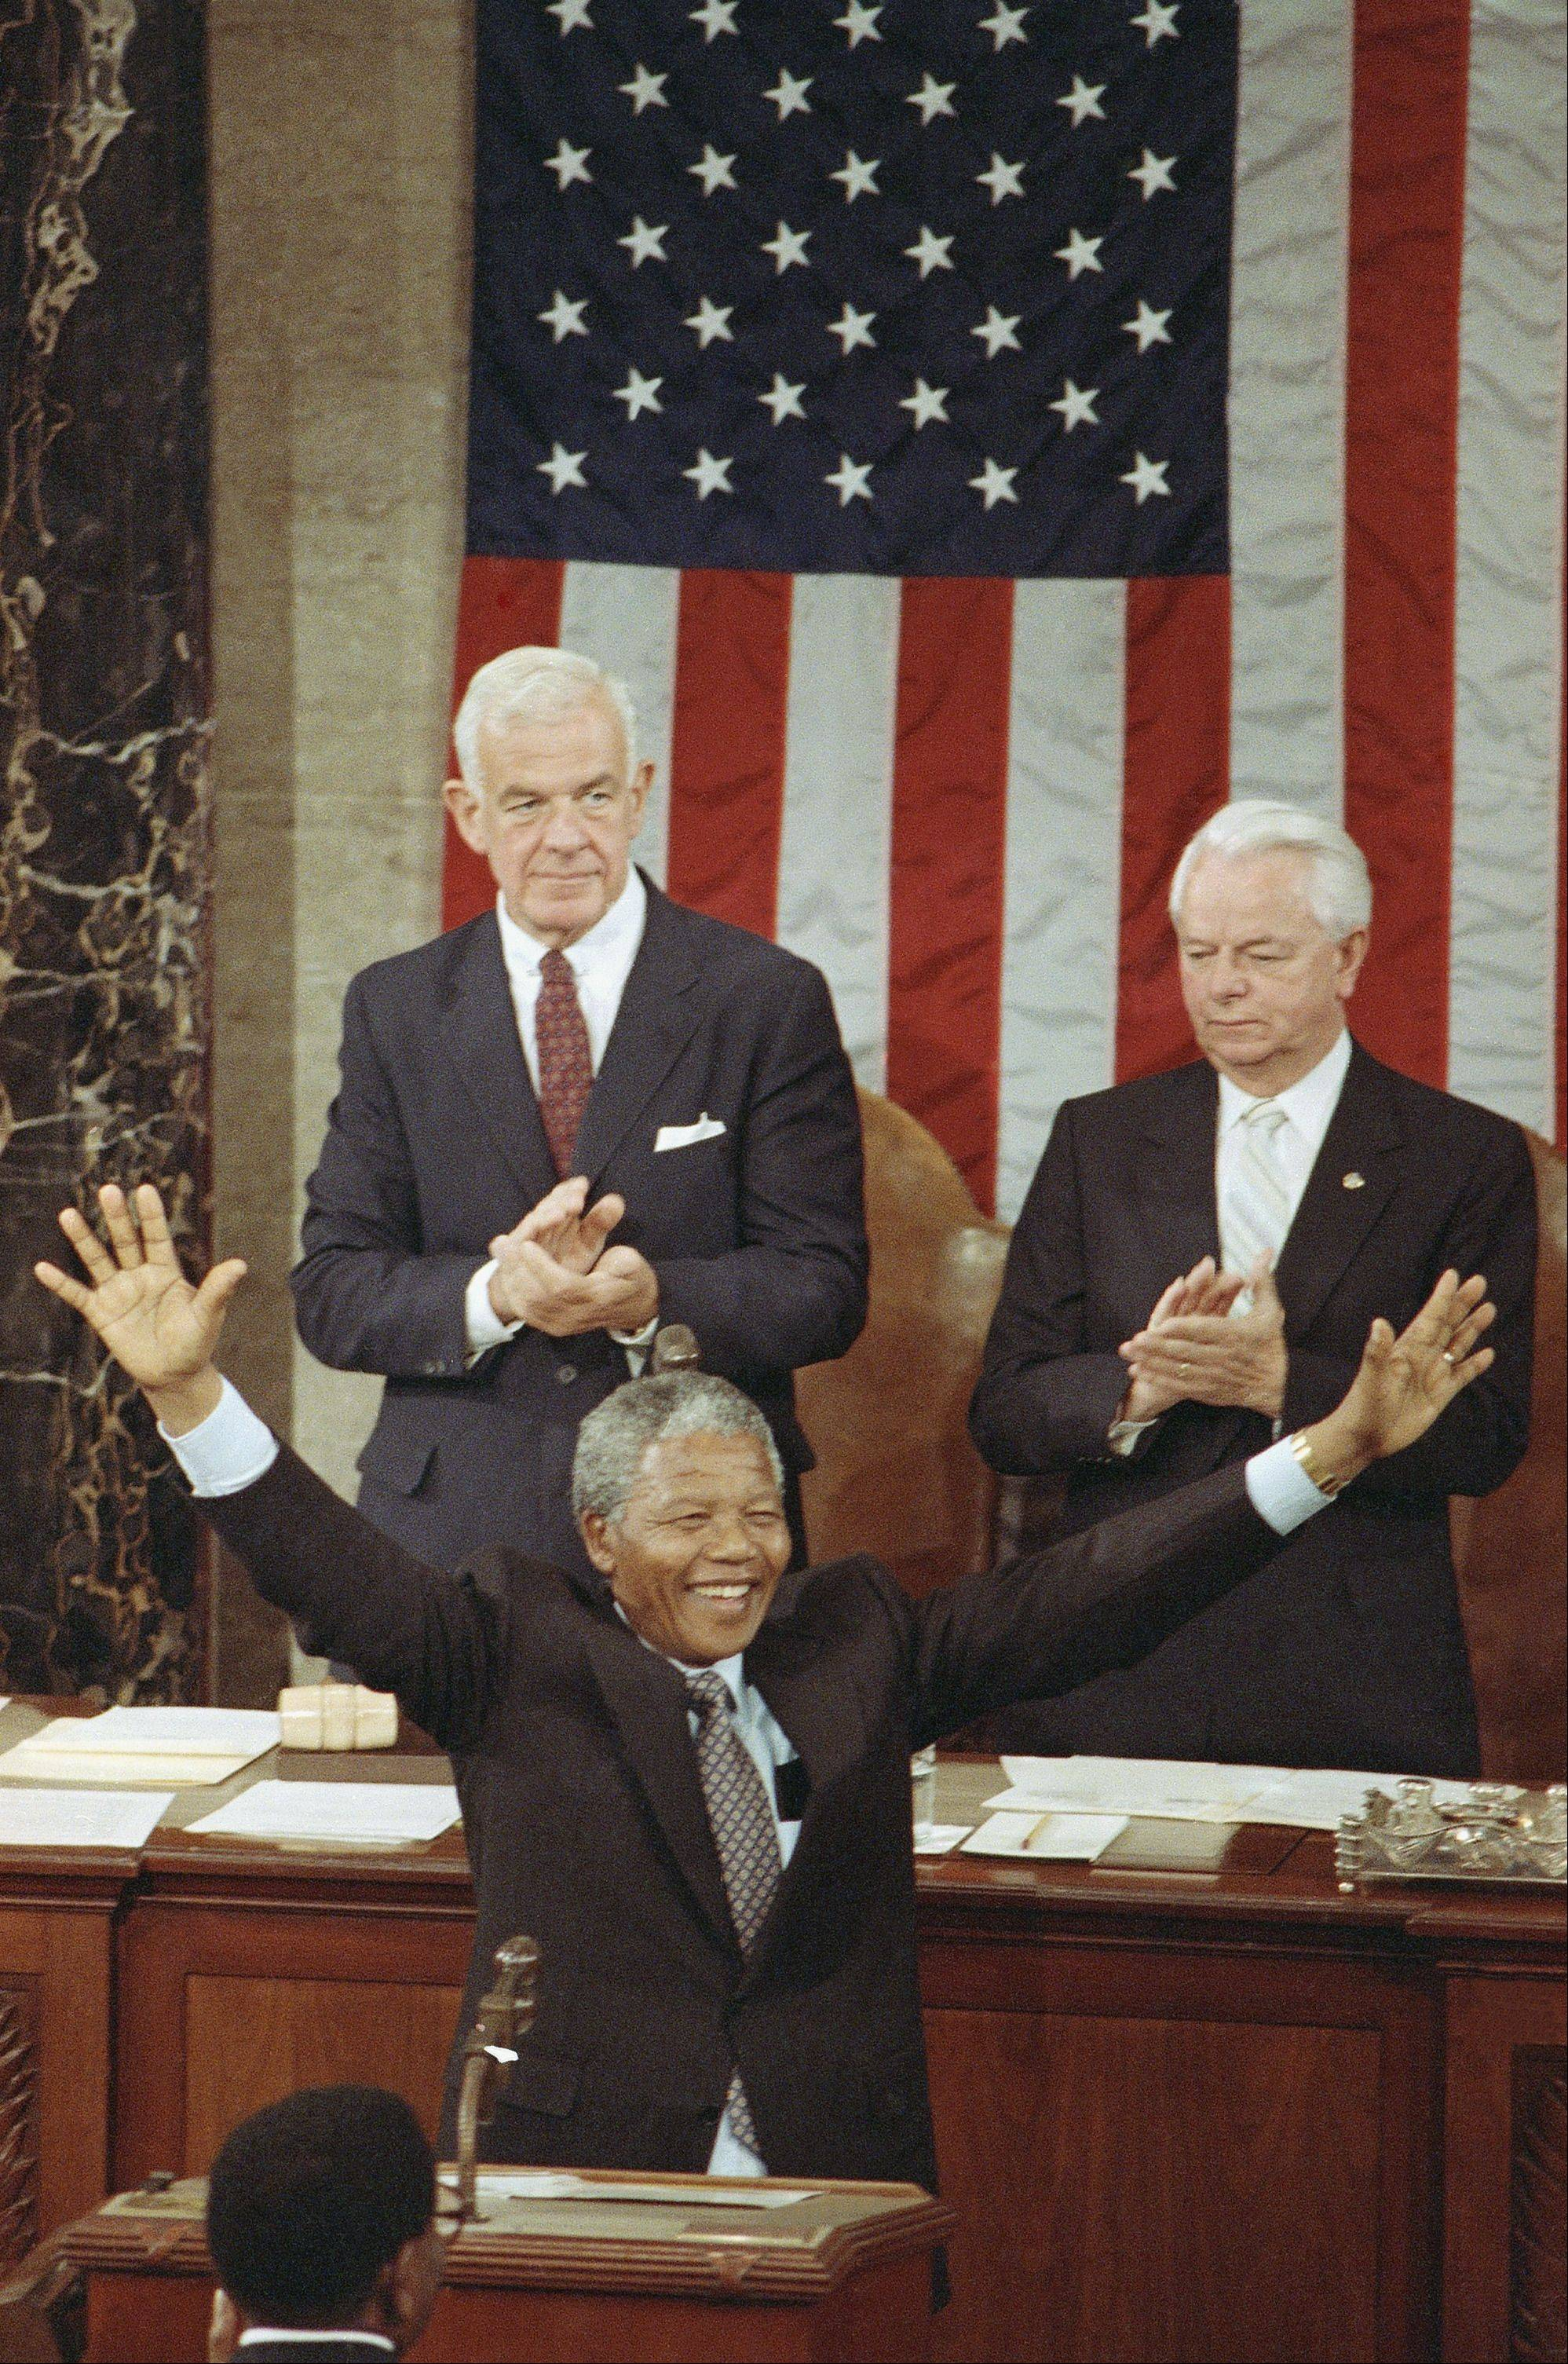 Nelson Mandela, Deputy President of the African National Congress, acknowledges applause as he stands before a Joint Meeting of Congress on Capitol Hill in Washington Tuesday, June 26, 1990.